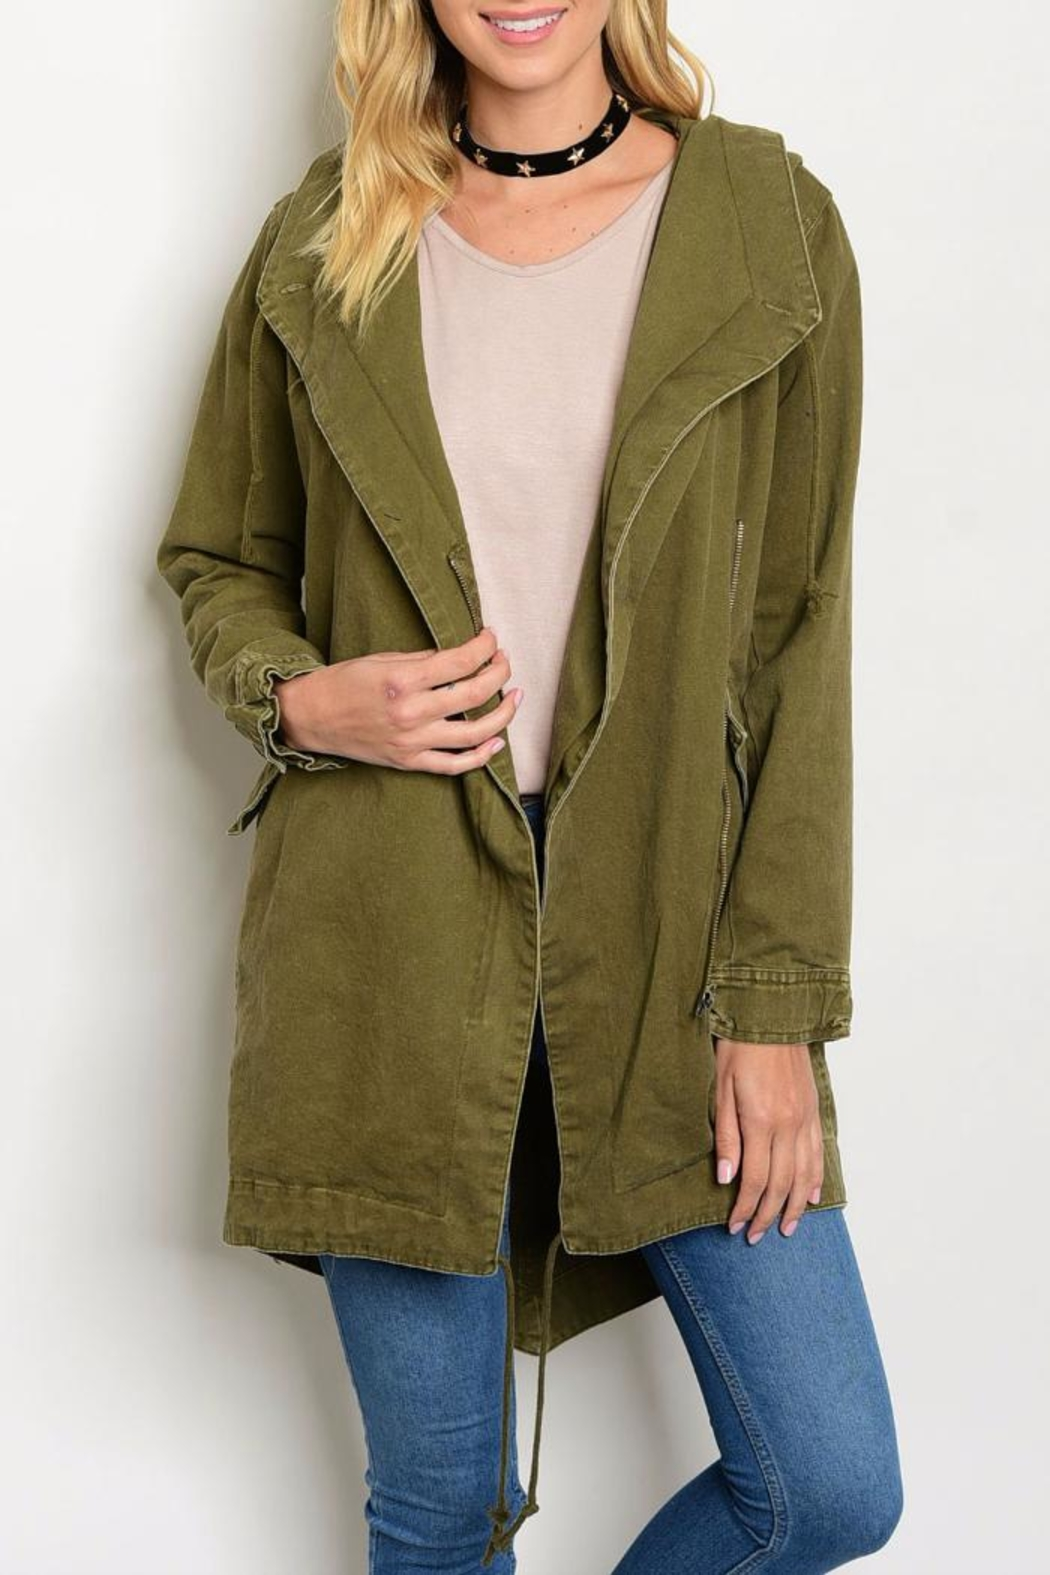 Cookie's Clothing Co  Army Green Jacket - Main Image